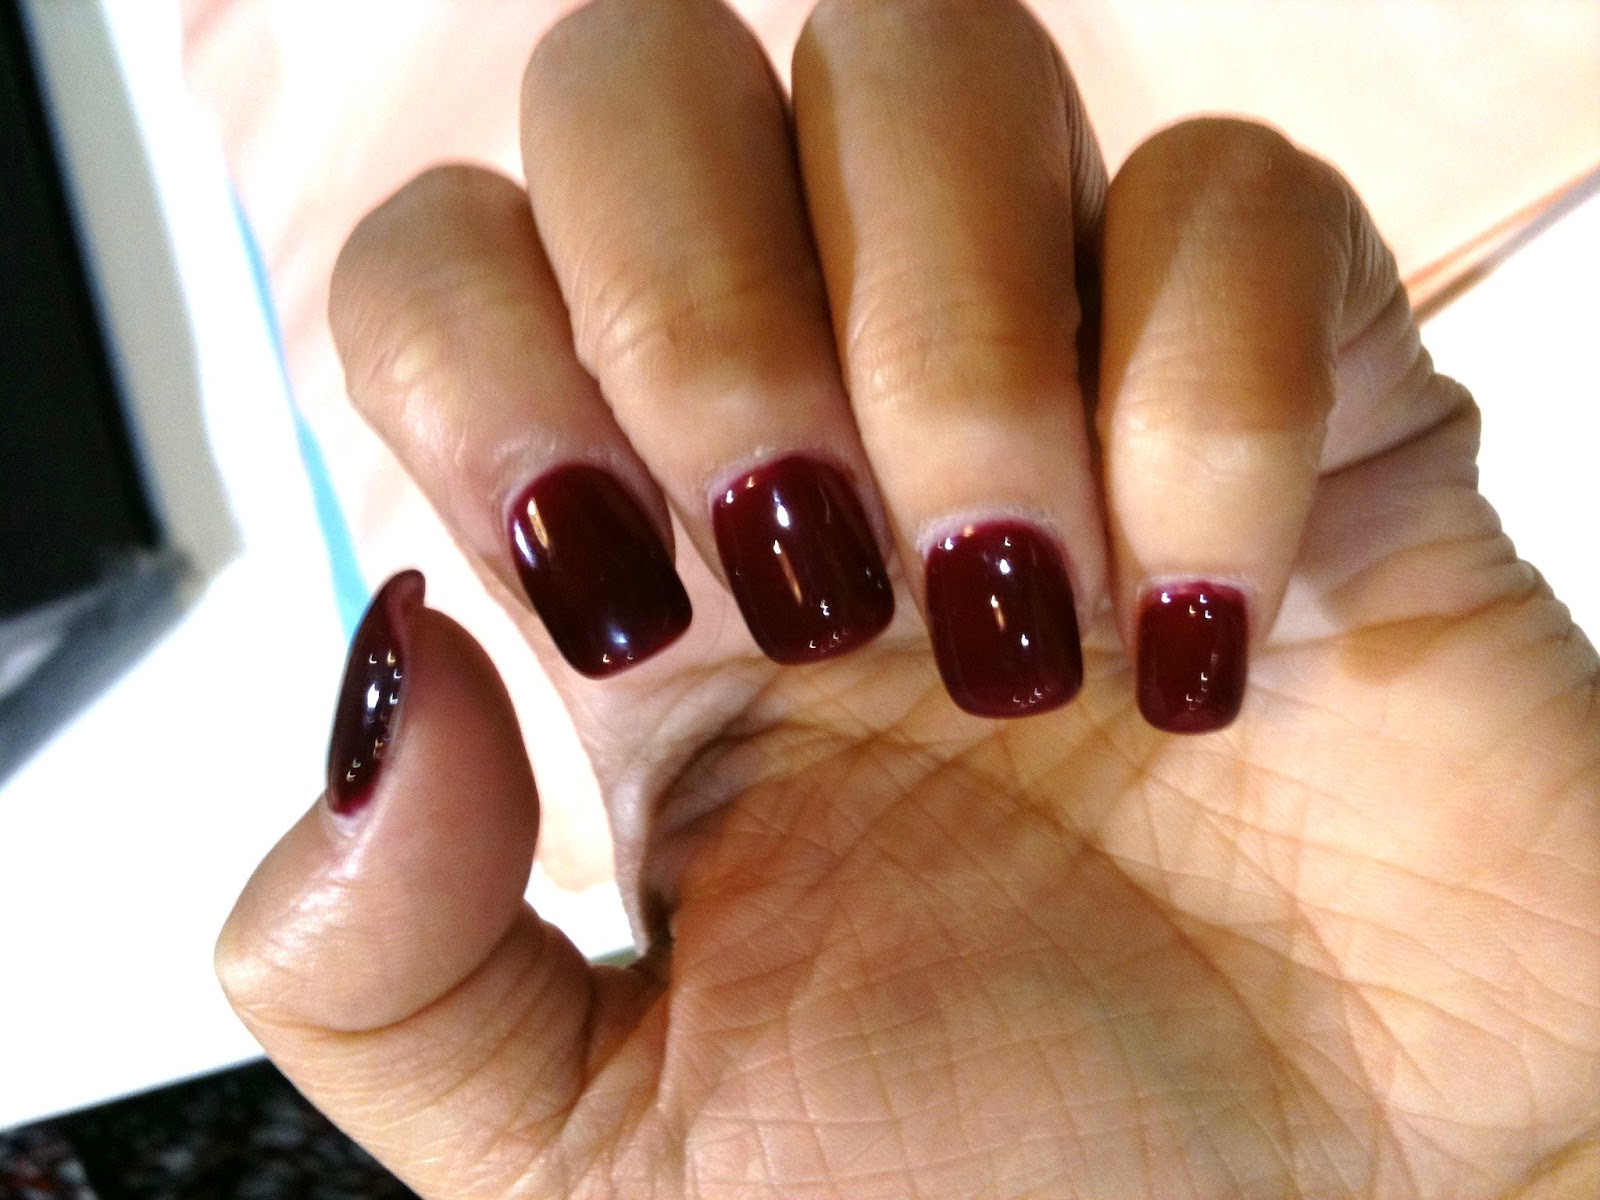 Sweet dreams for Queen Bees: Shellac Nails.